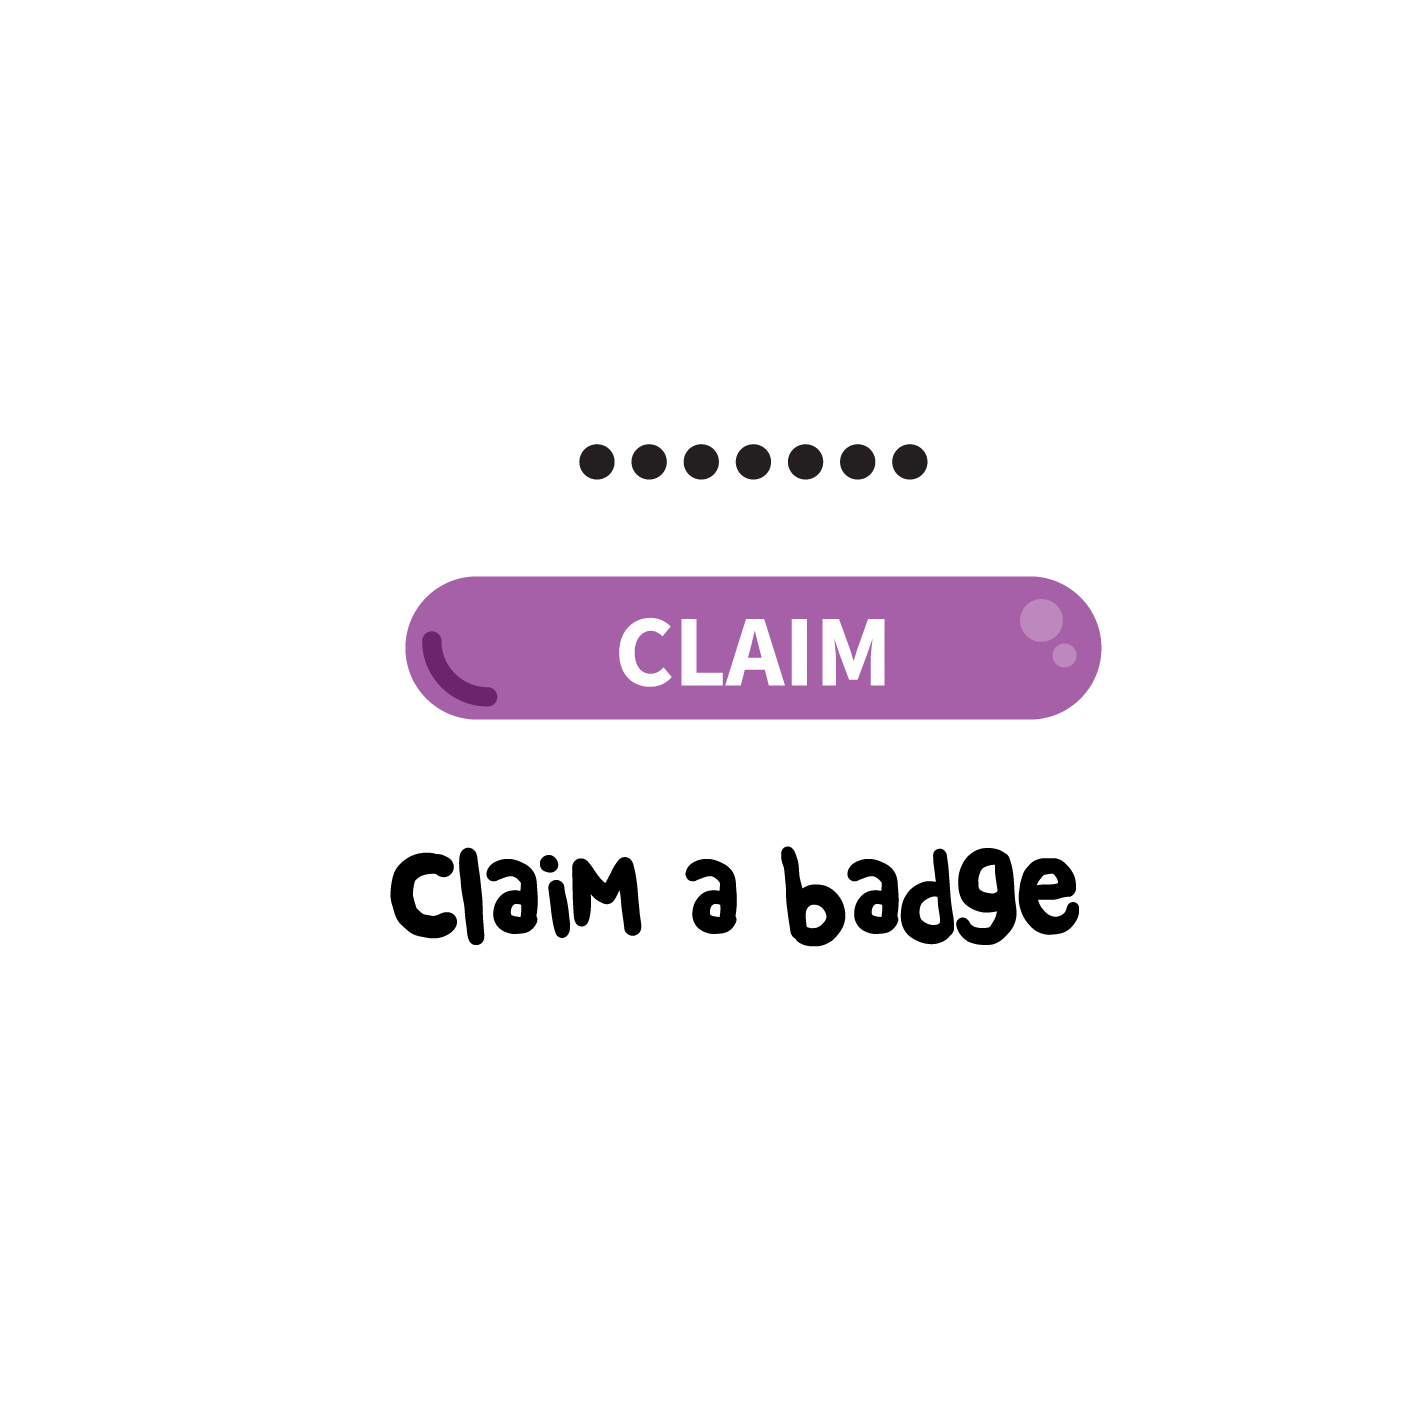 Claim a badge